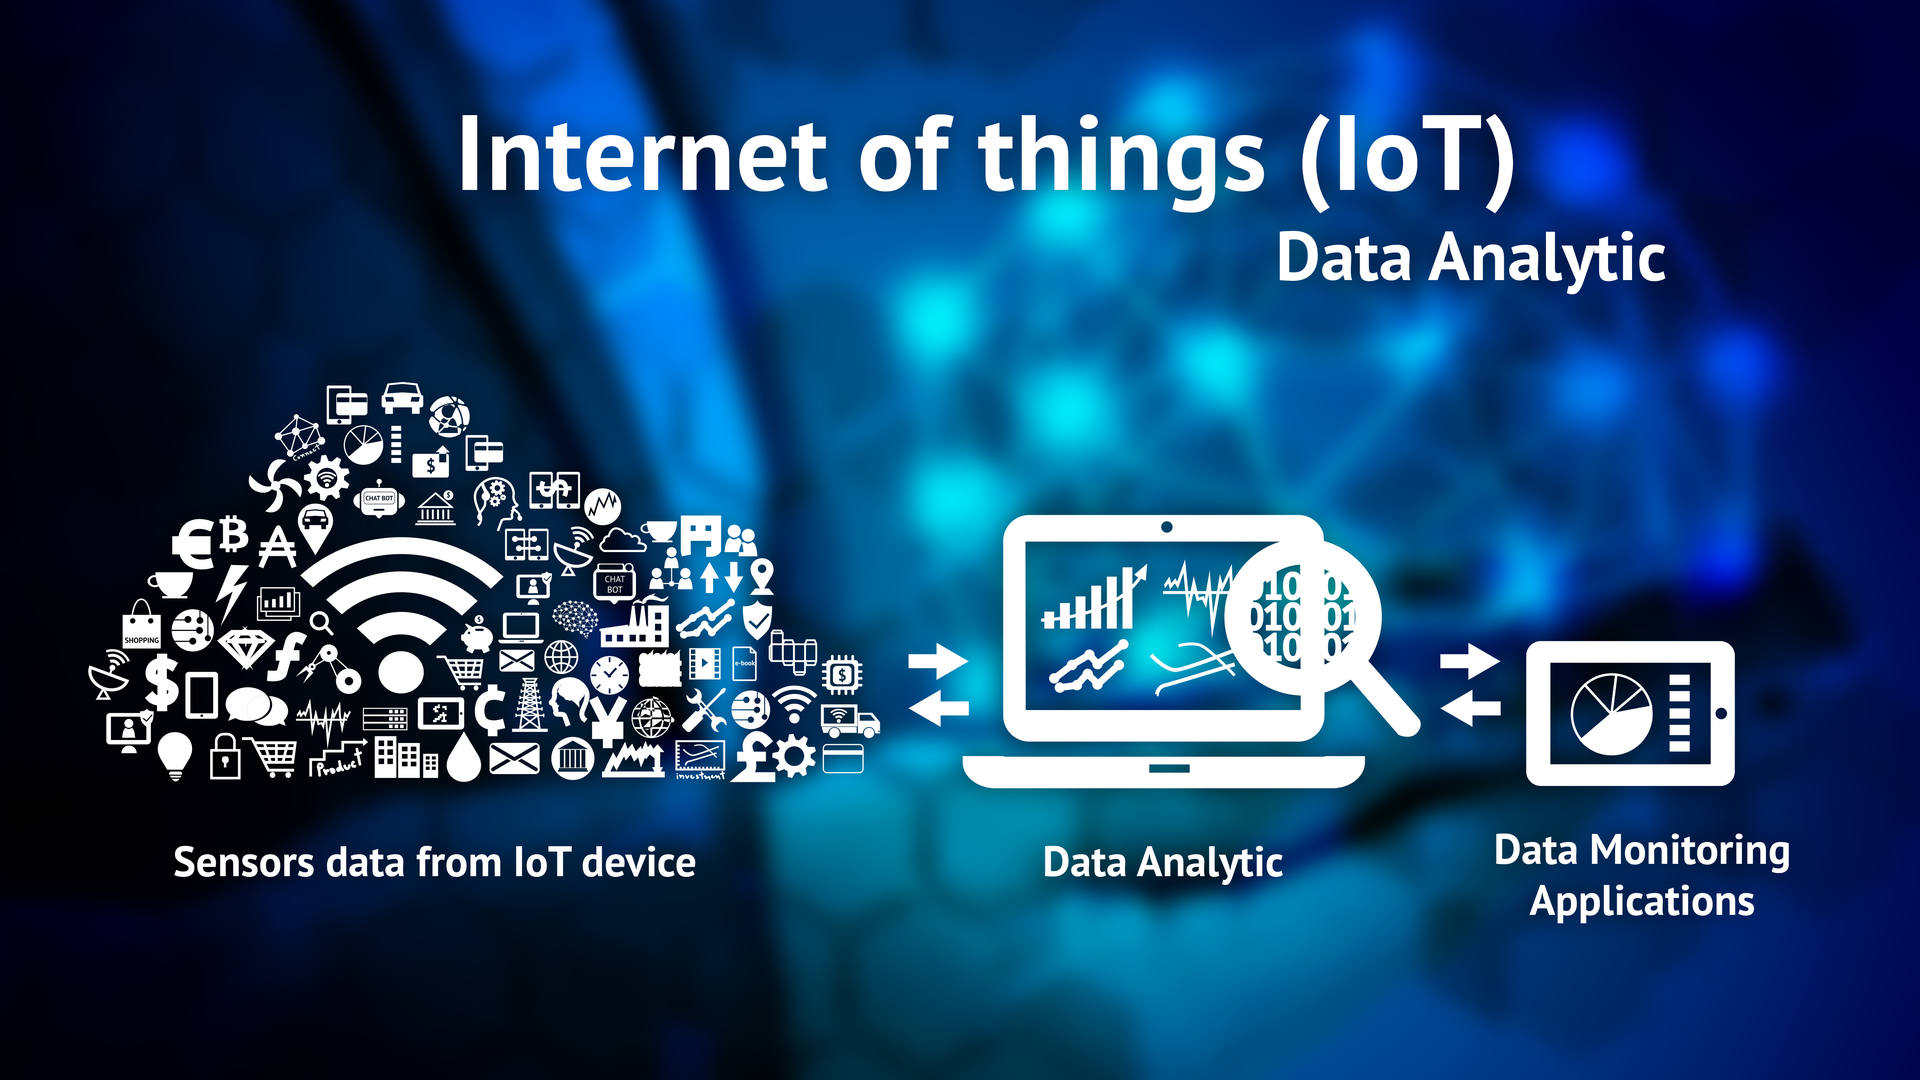 Top 3 Internet of Things (IoT) Applications